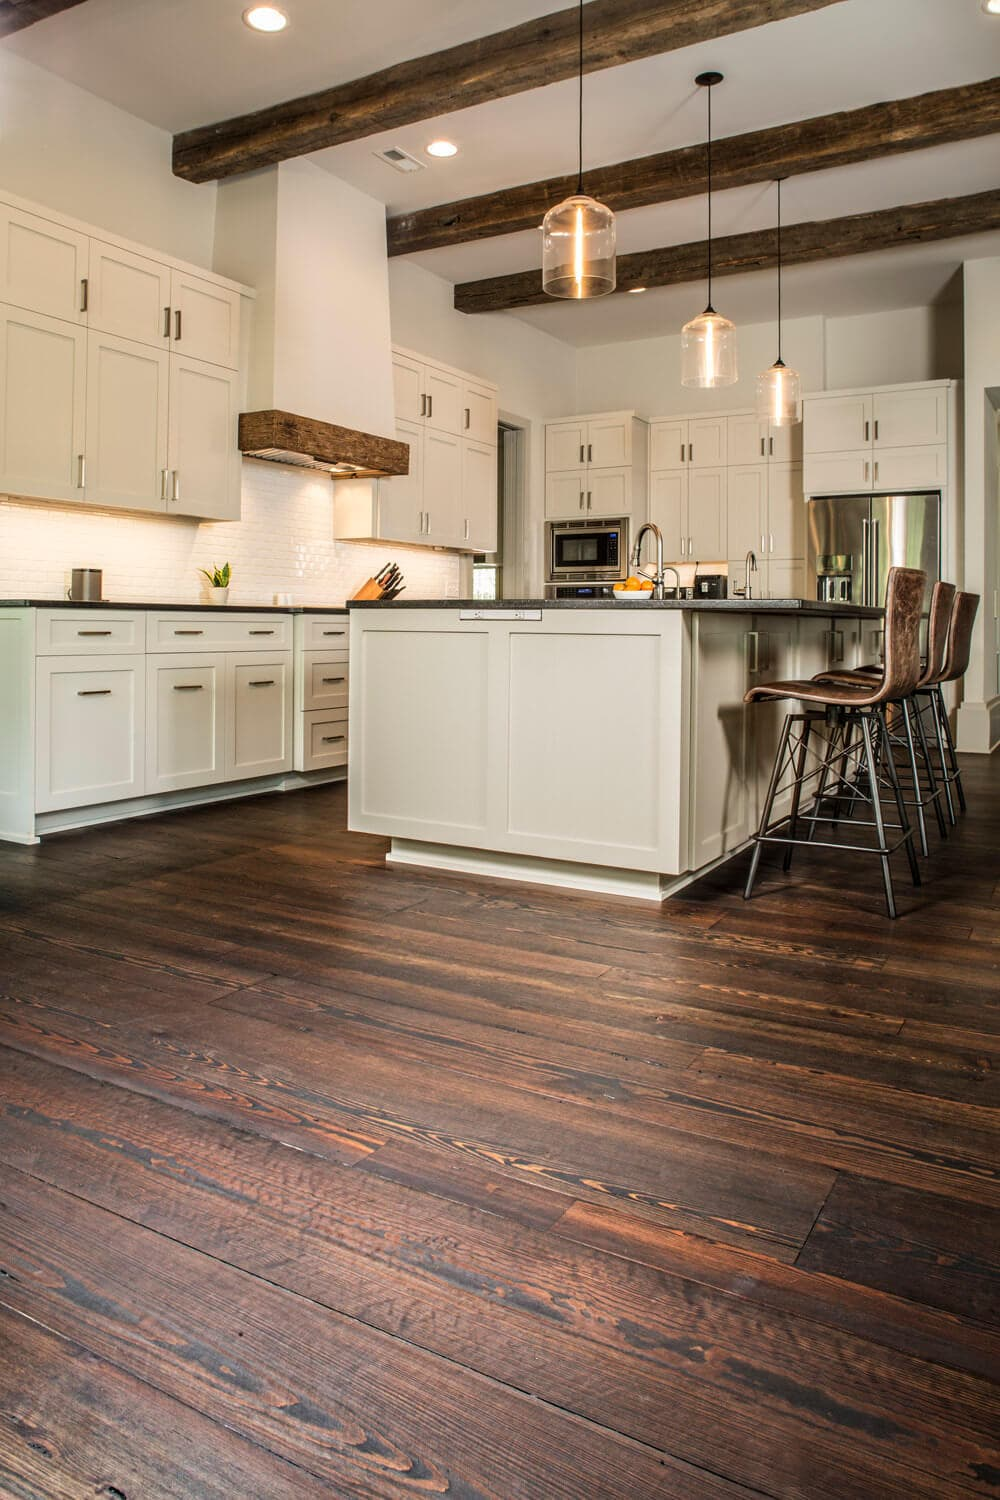 wide plank plain sawn heart pine in travelers rest, nc kitchen